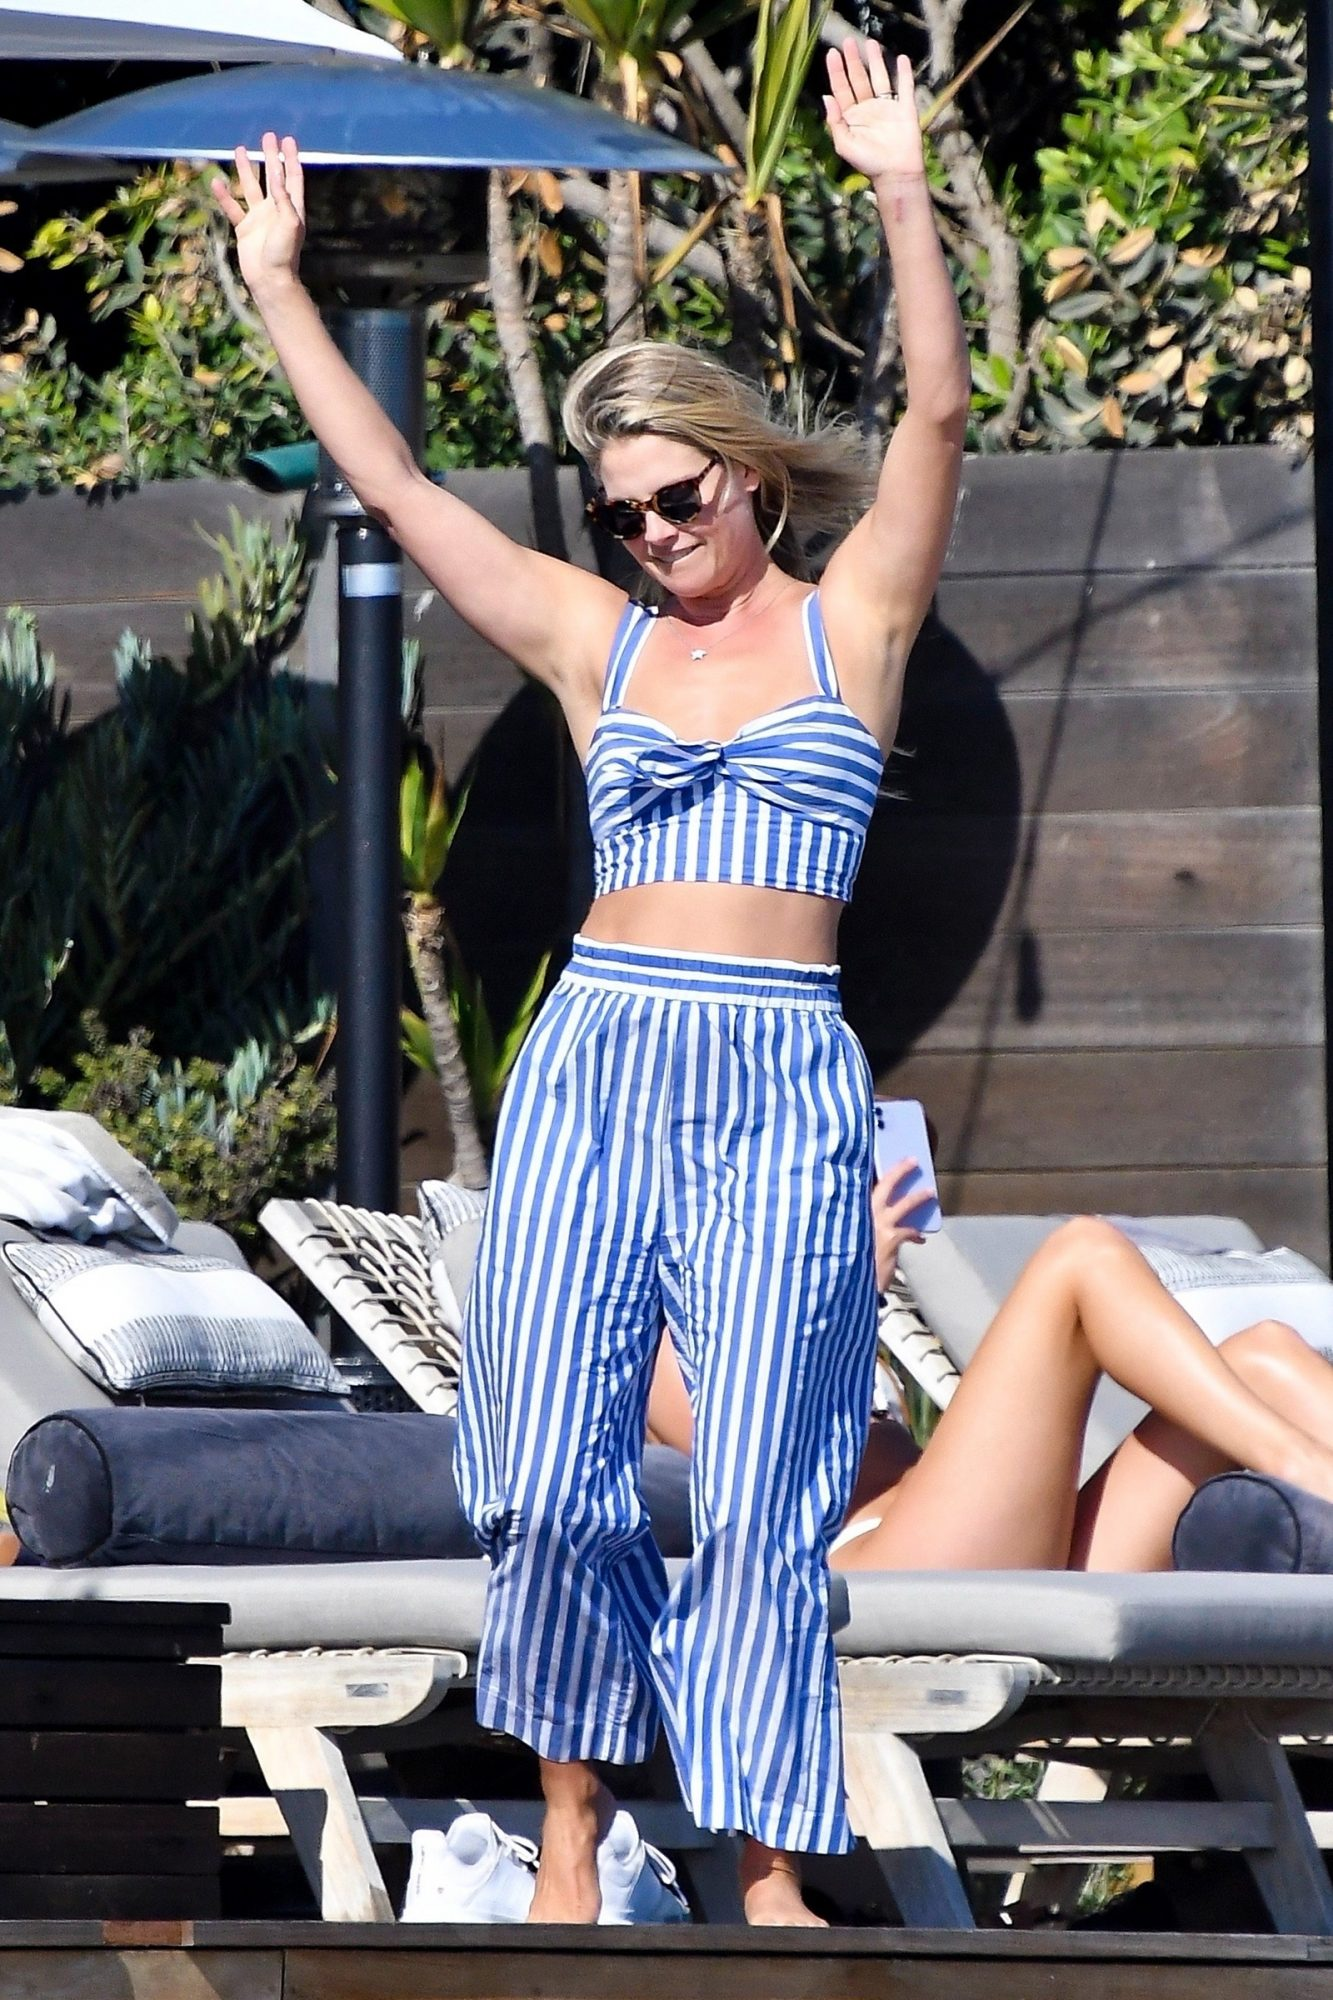 Ali Larter looks to be enjoying herself as she dances with a cocktail at a Malibu beach house party.